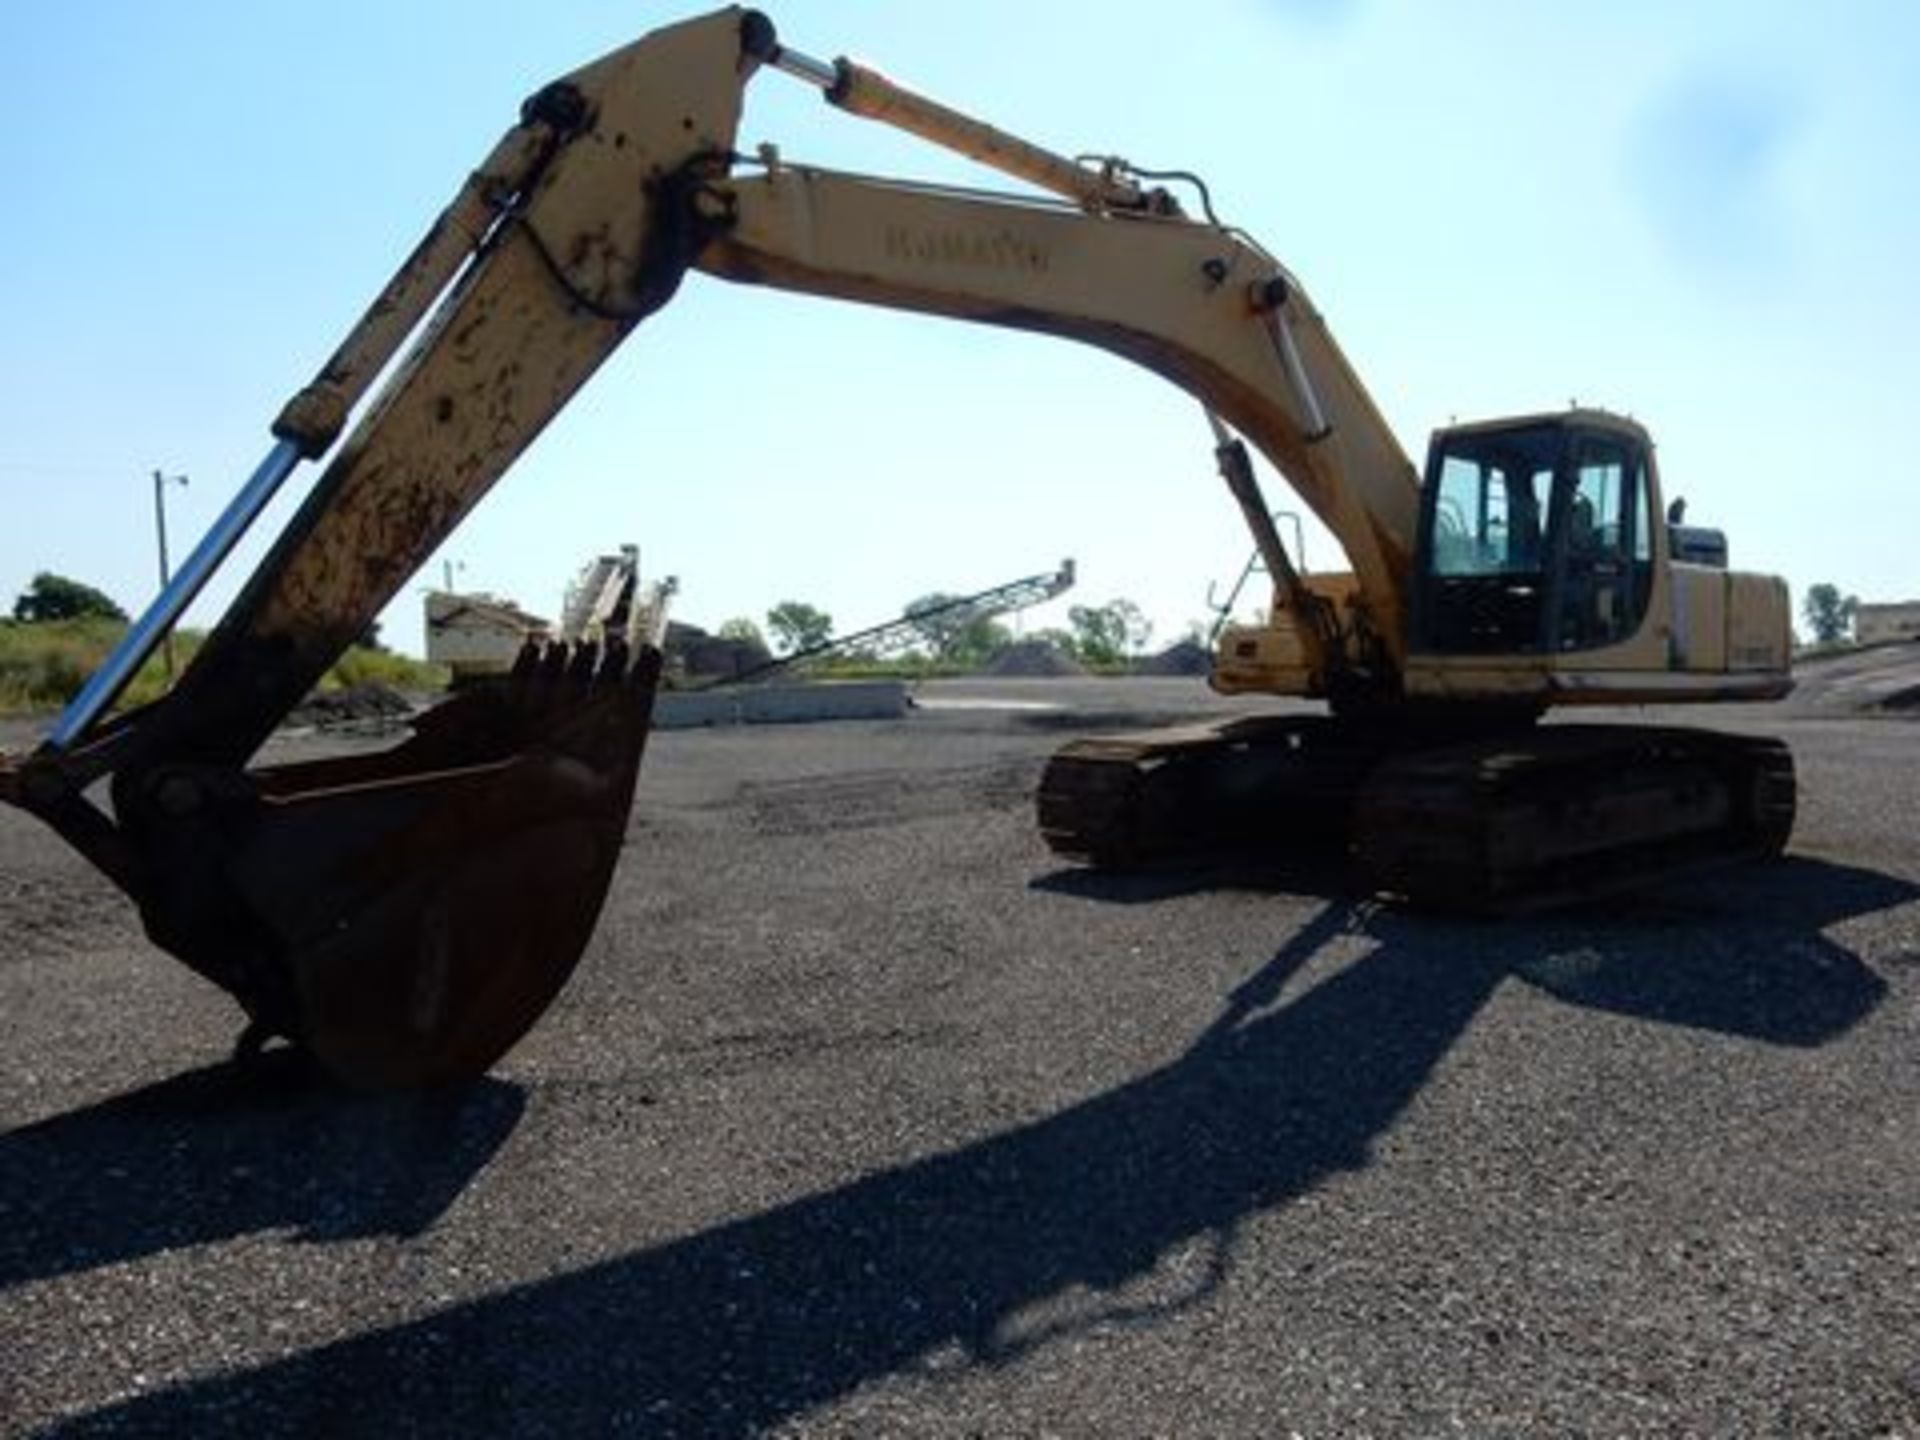 1997 KOMATSU EXCAVATOR, M# PC300LC-6LC, S/N A80735, HOURS N/A, 3-YD BUCKET, MISSING FRONT GLASS - Image 2 of 6